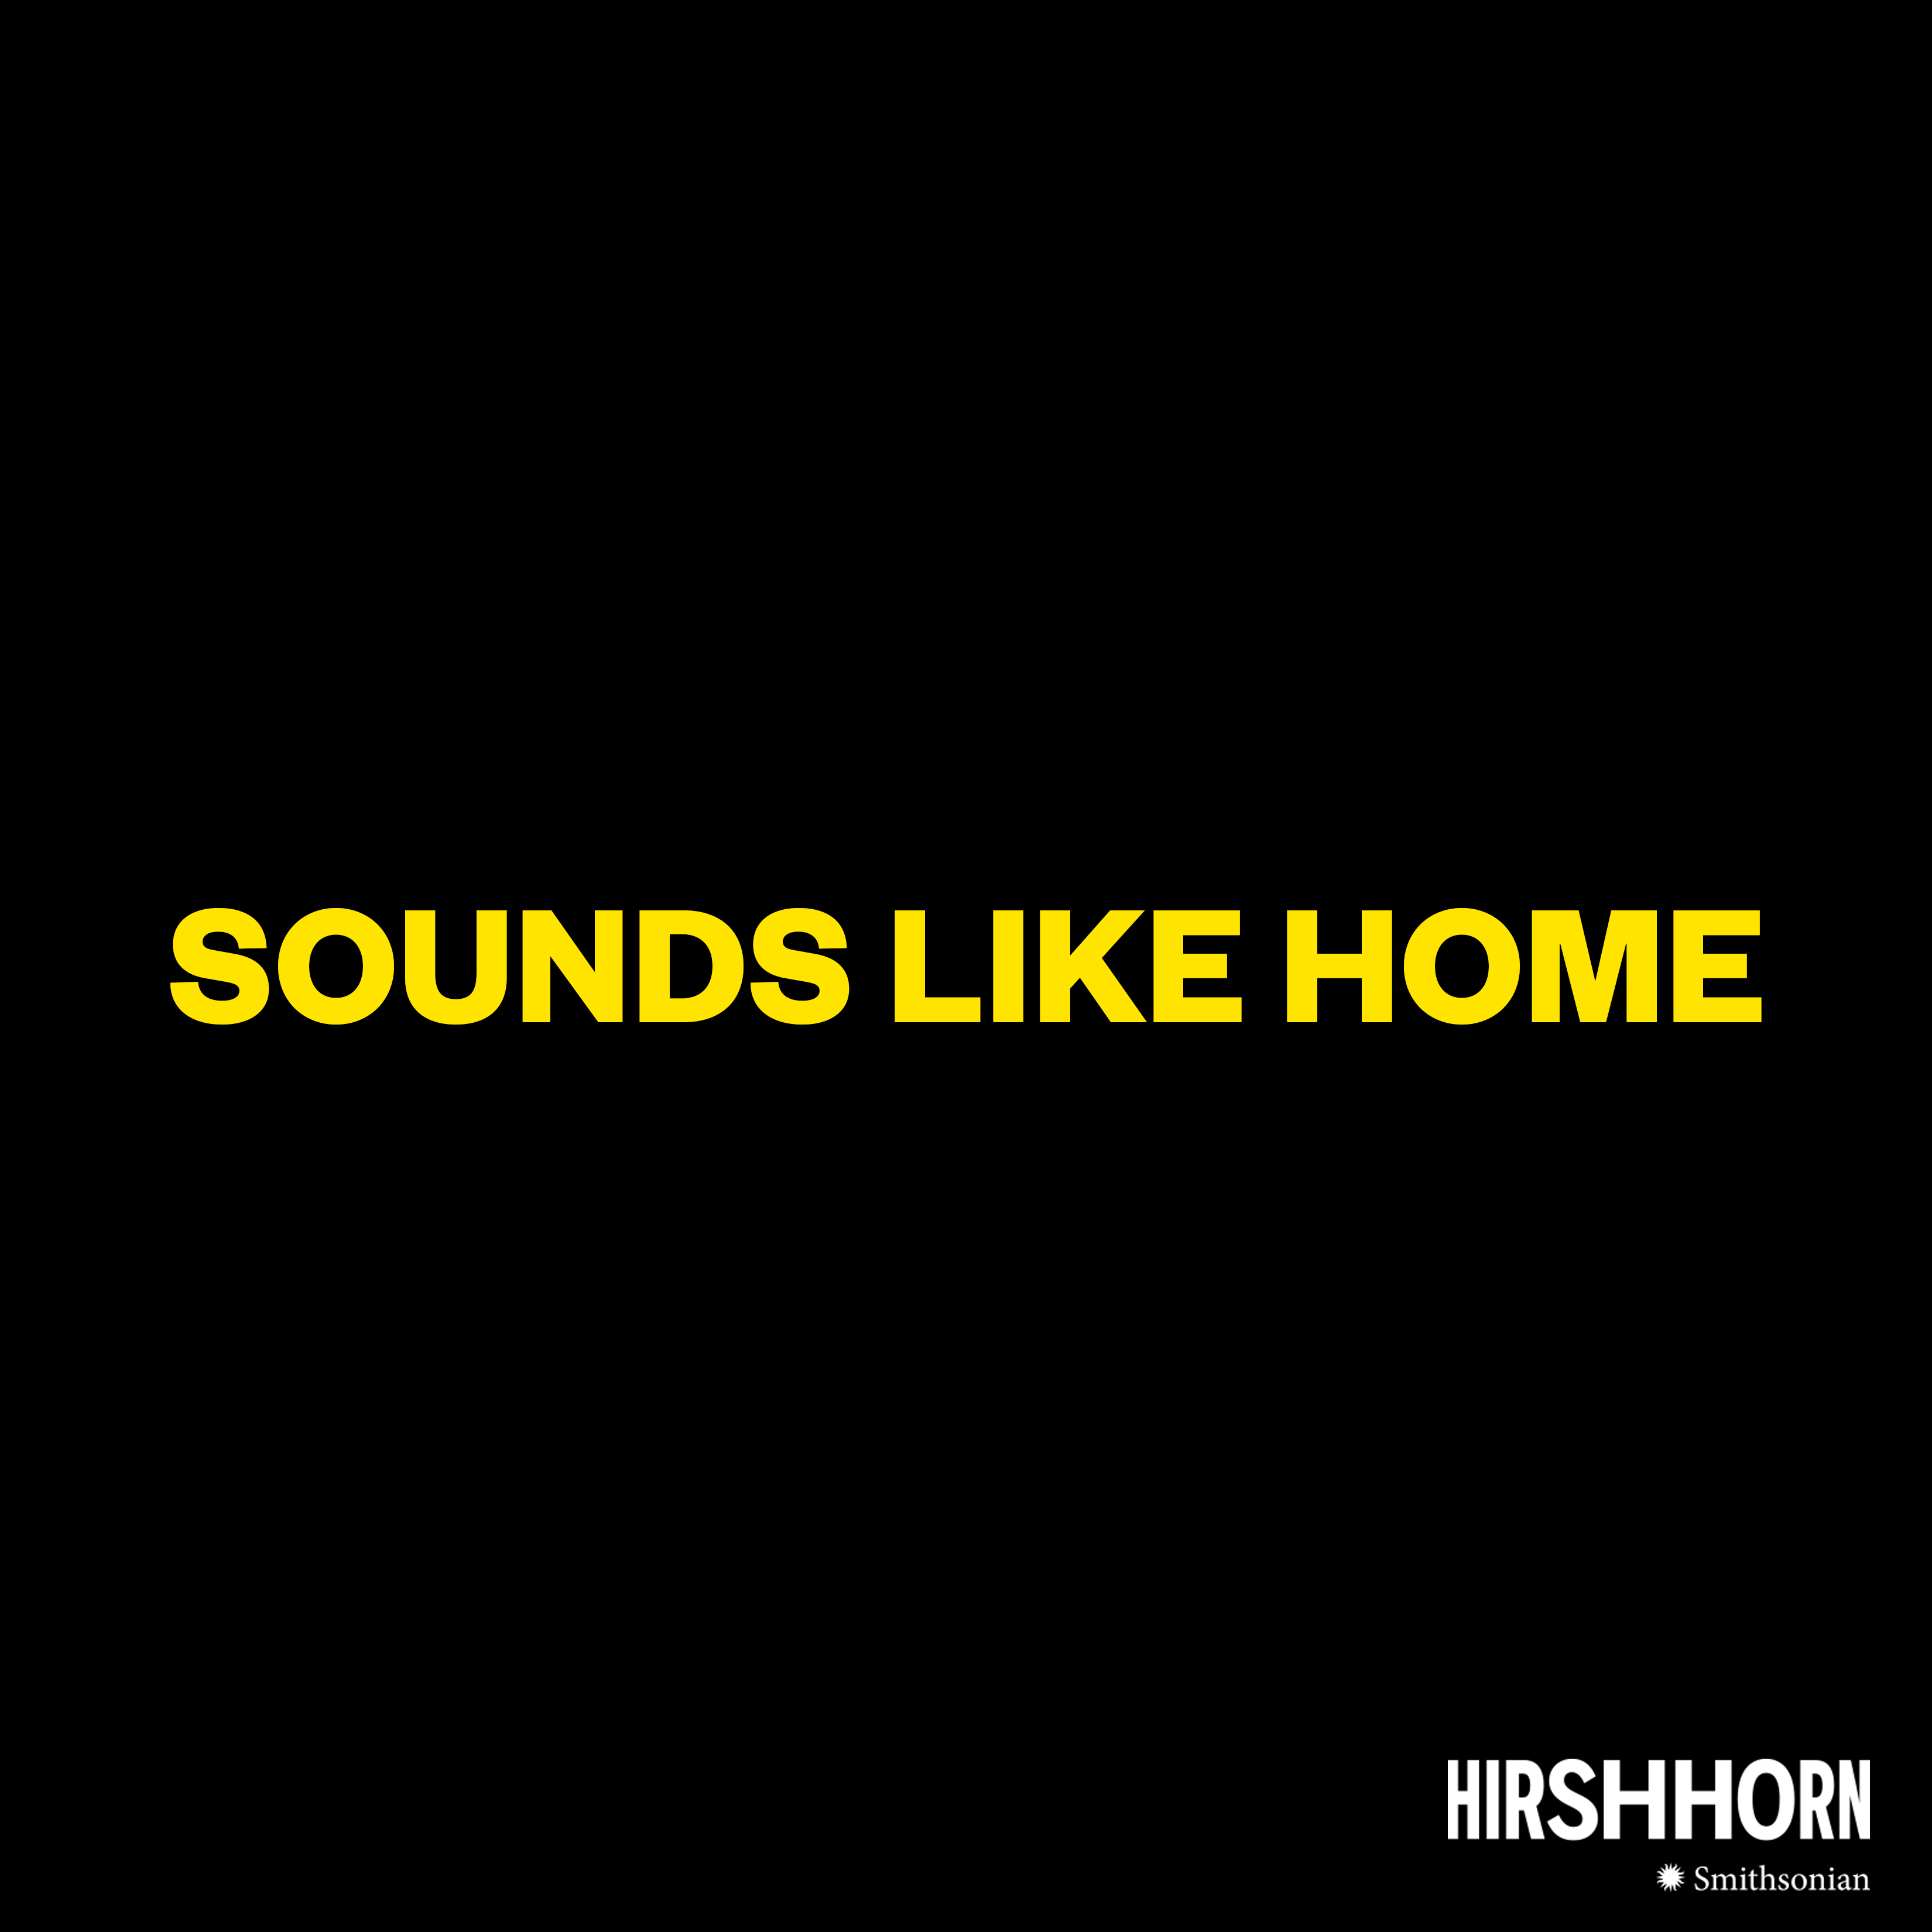 """Text graphic reads """"Sounds Like Home"""" with Hirshhorn logo."""